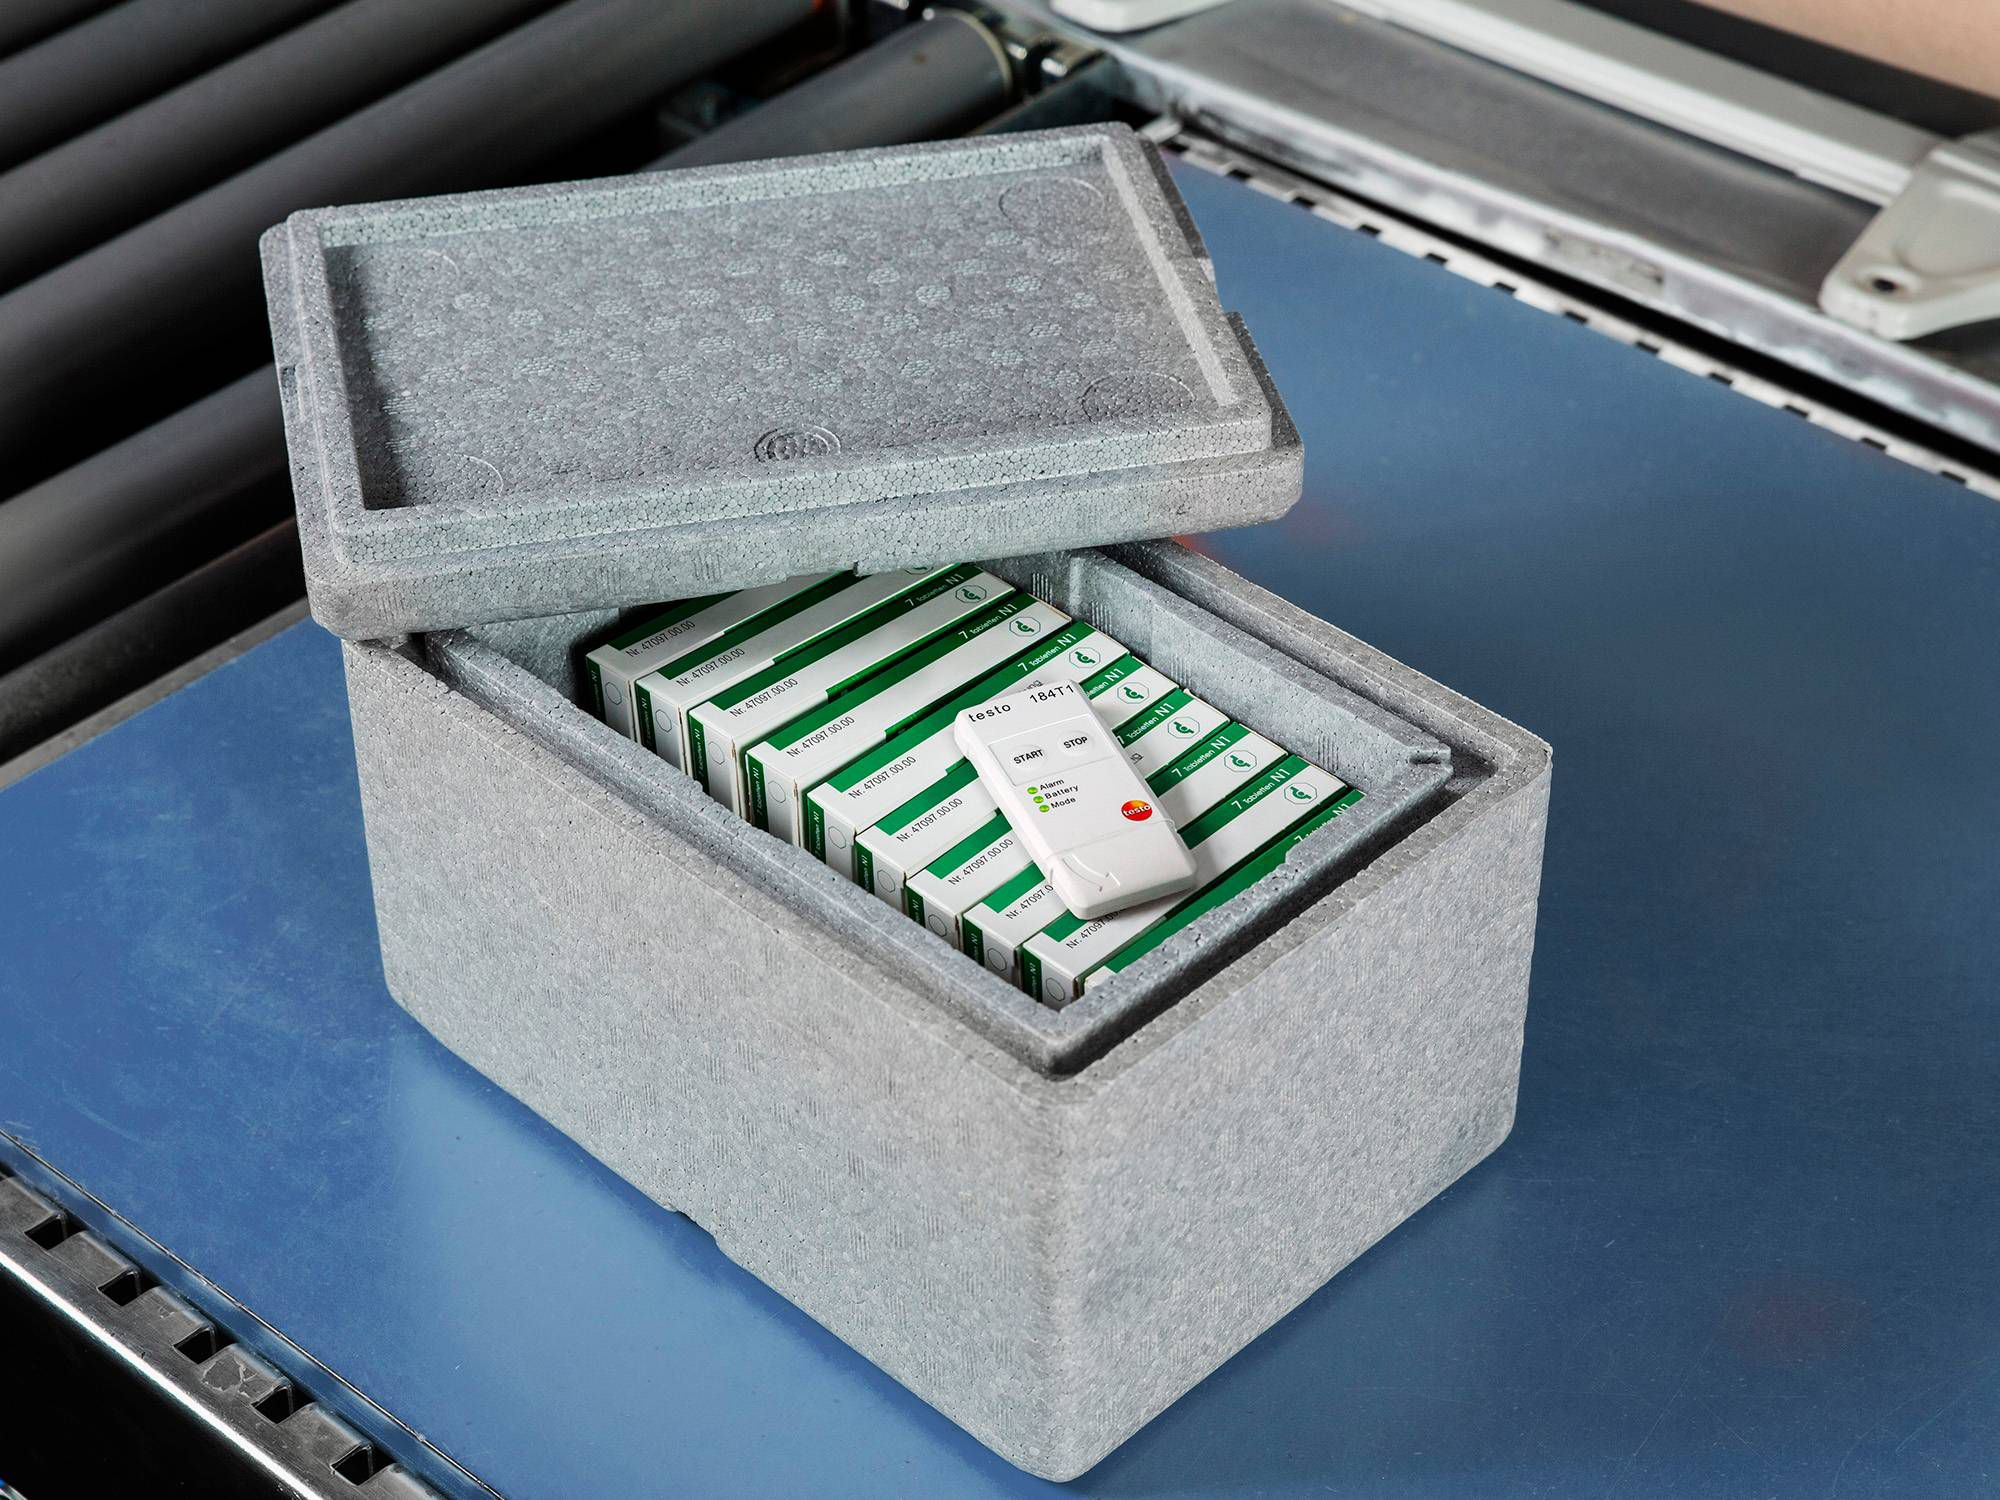 A transport data logger is enclosed with a cool box containing pharmaceuticals